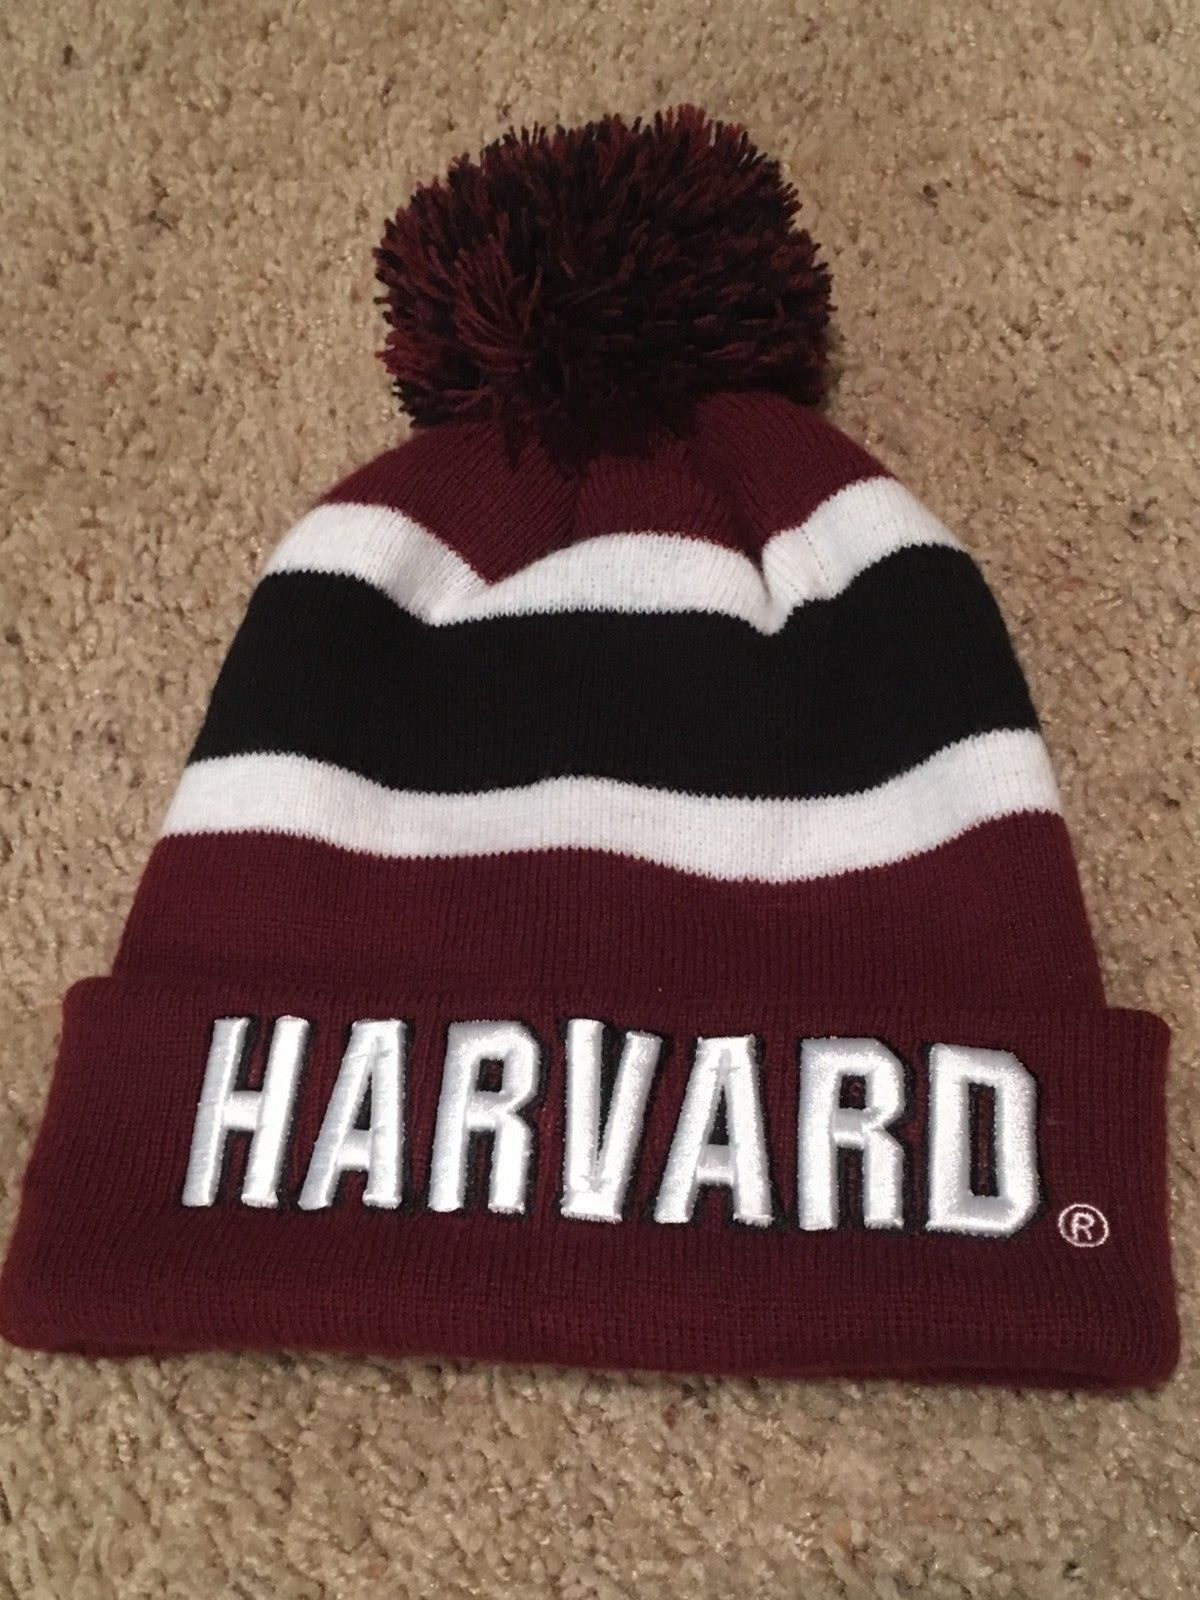 Harvard University Crimson Winter Beanie Hat Ivy League One Size Fits All